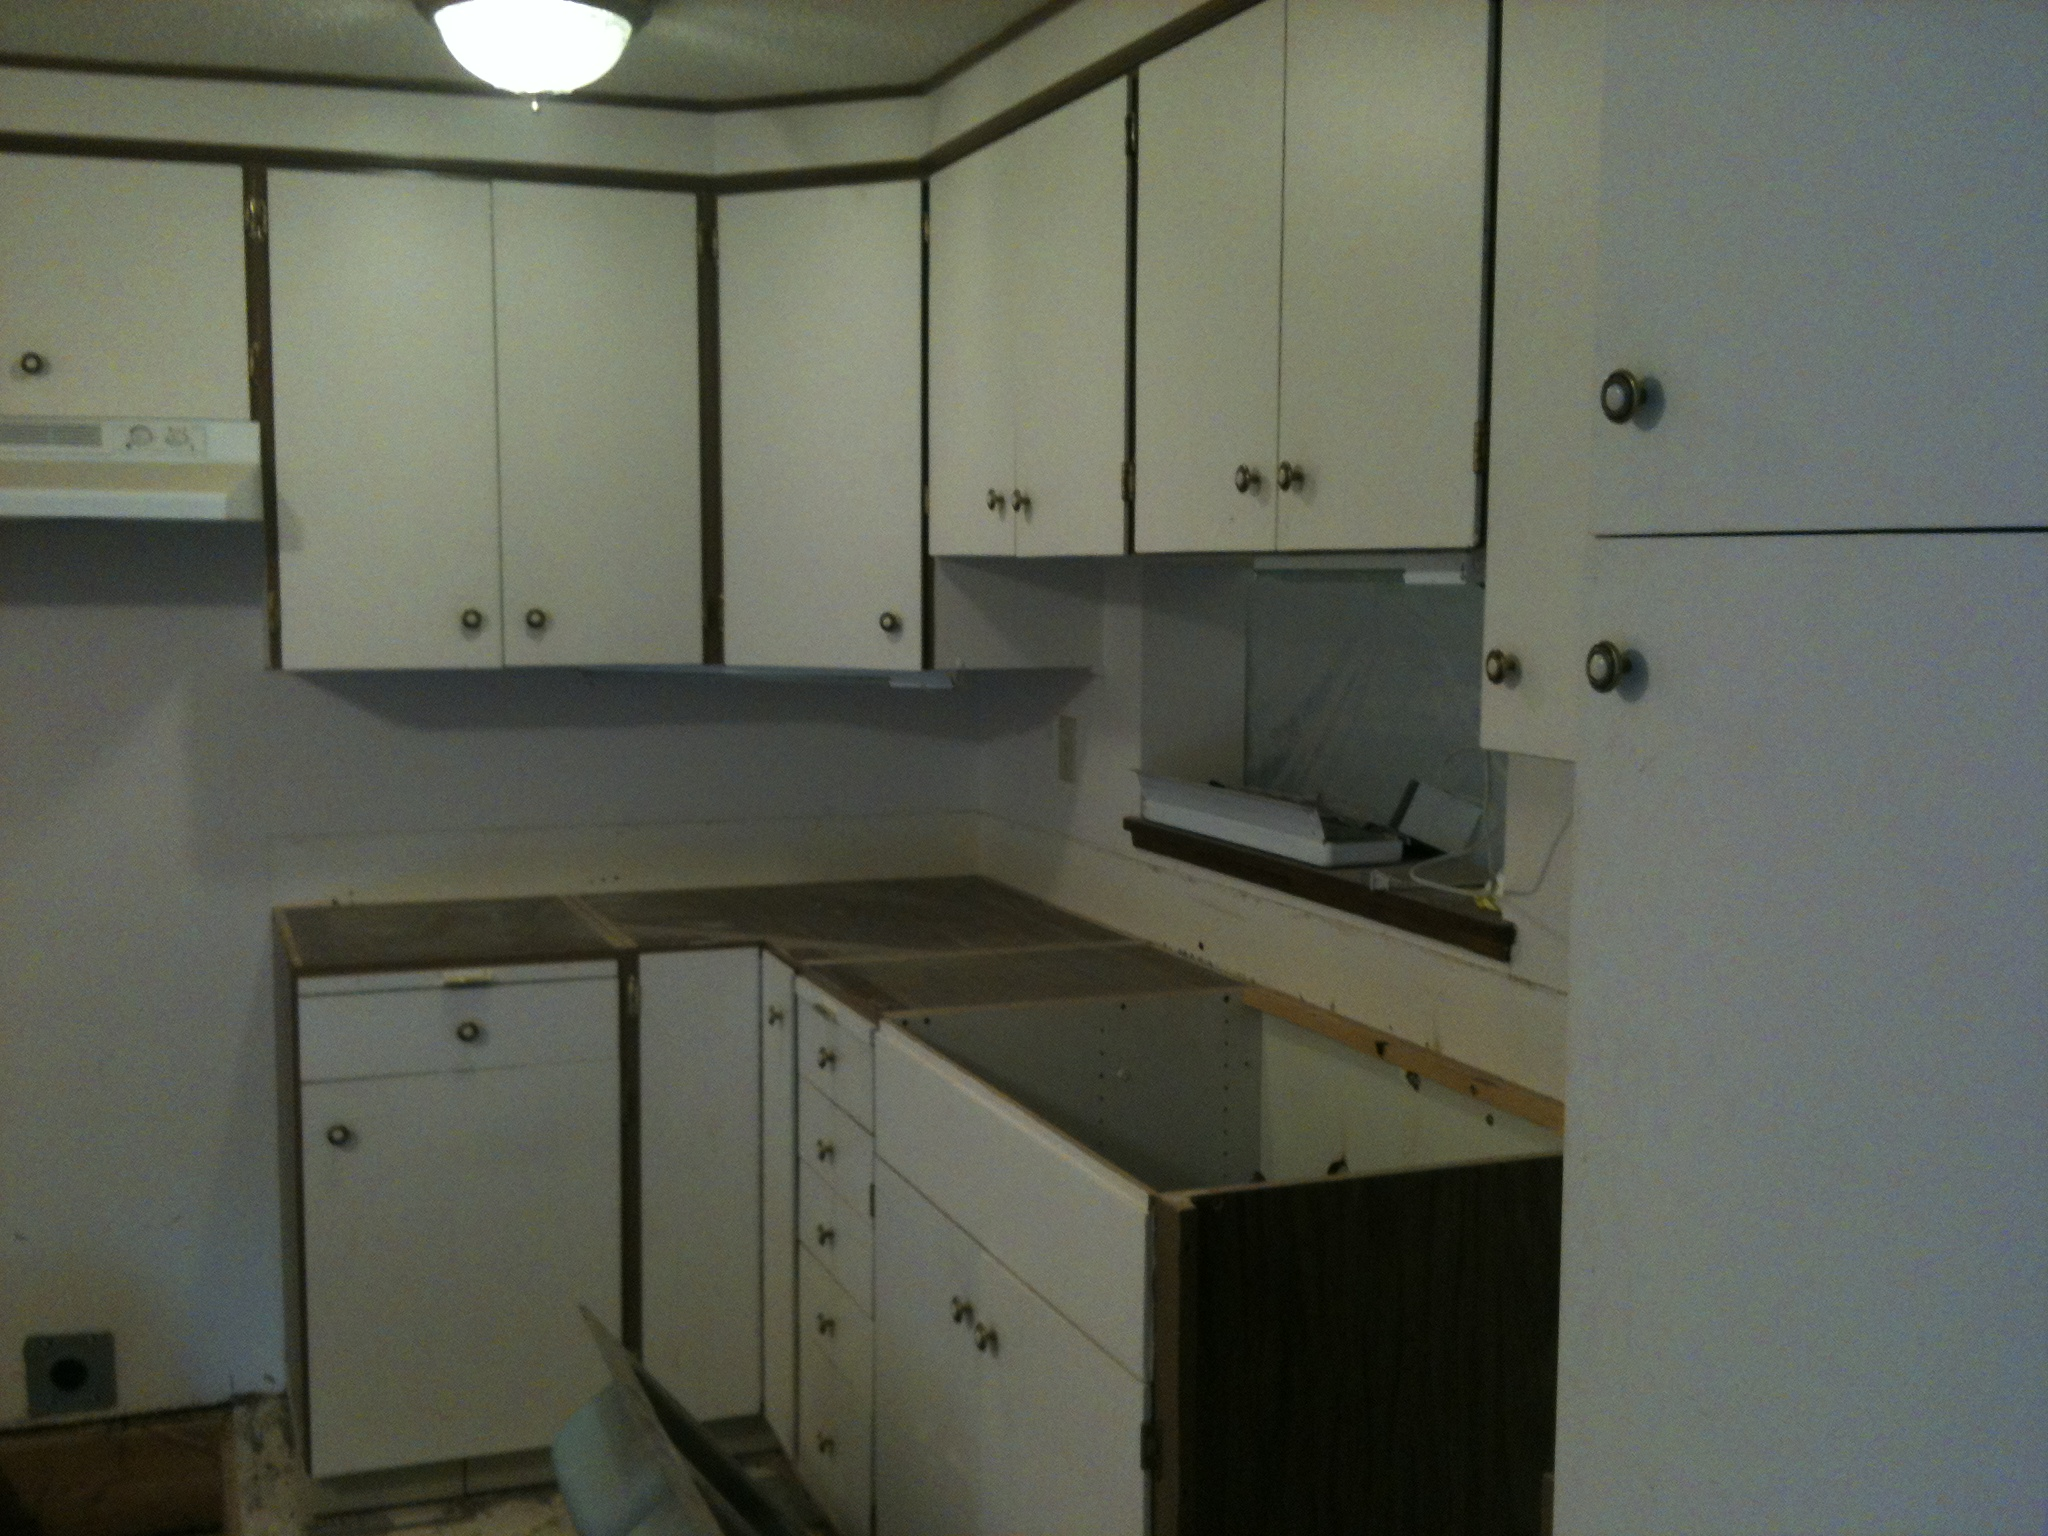 2013-02-22-BeforeKitchen.JPG